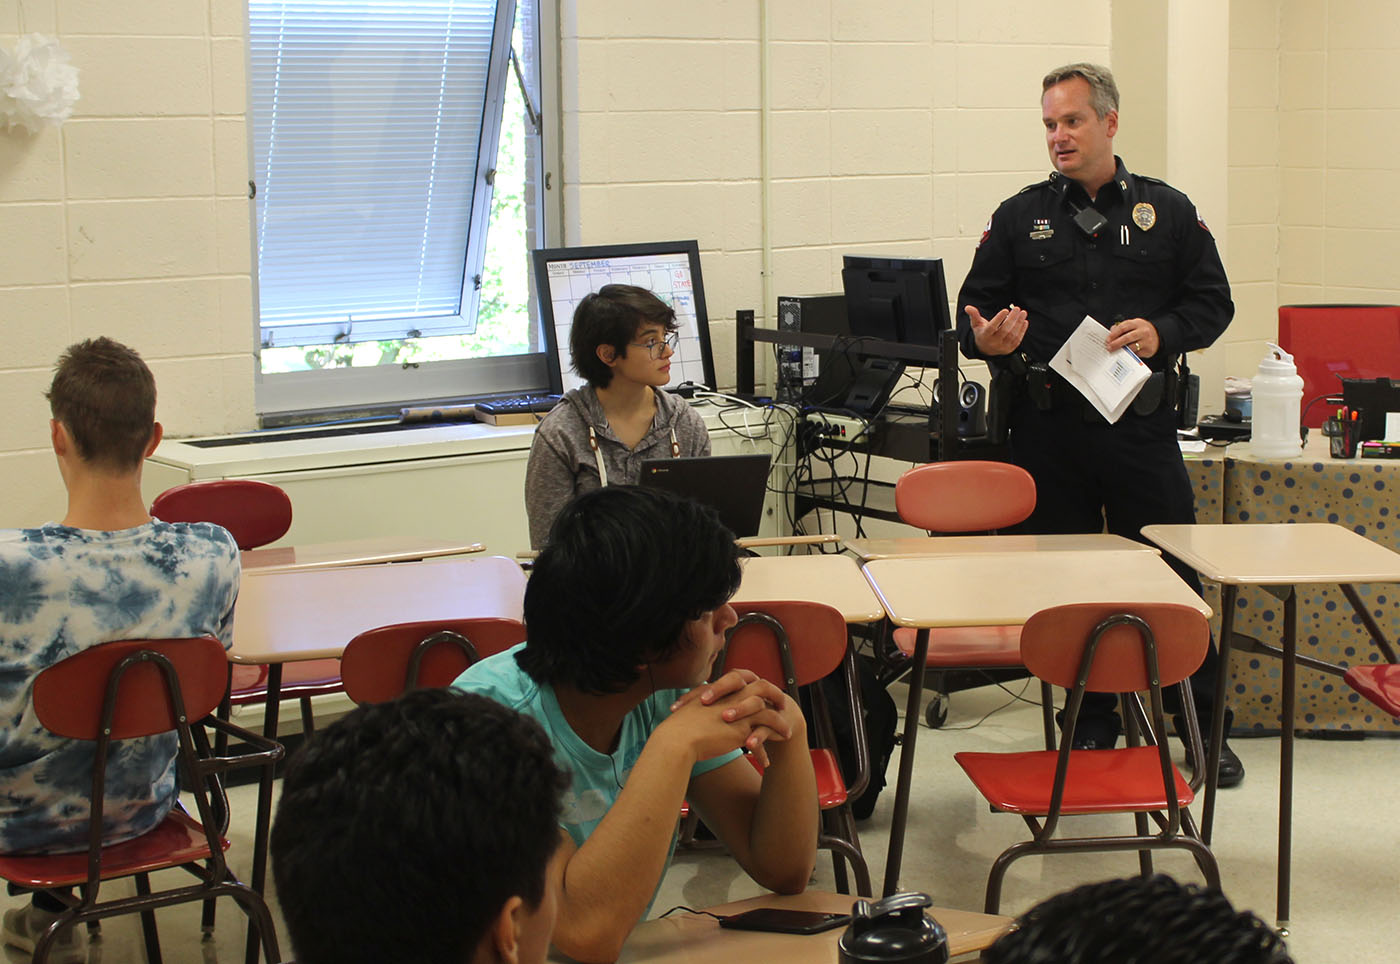 Local Police Leader Teaches New Criminal Justice Class At